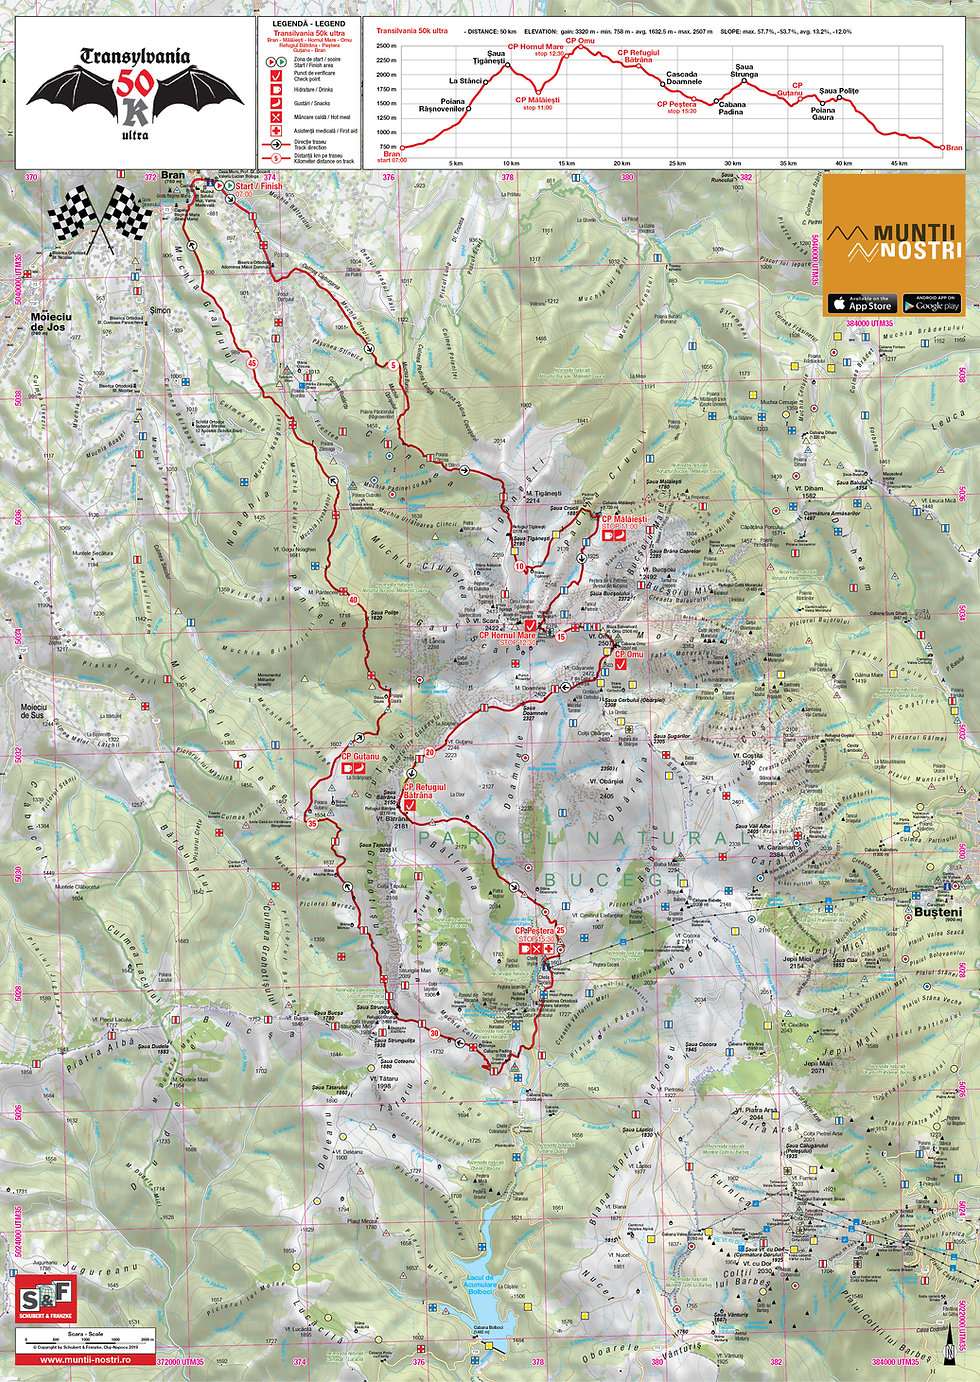 Transylvania 50k race route map and elevation profile - Bucegi Mountains